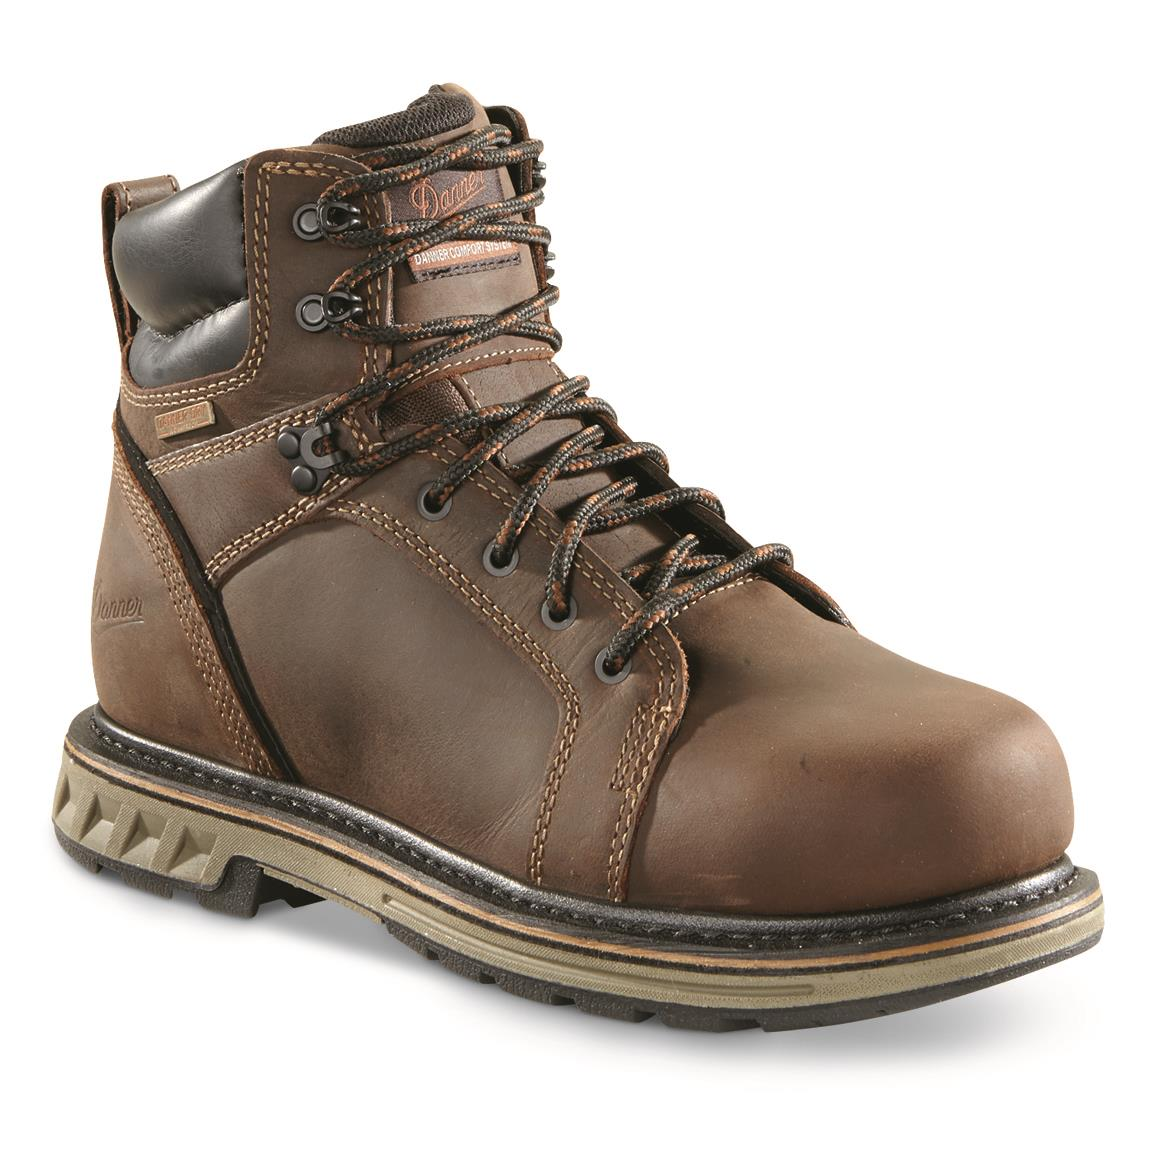 Danner Men's Steel Yard Waterproof Steel Toe Work Boots, Brown